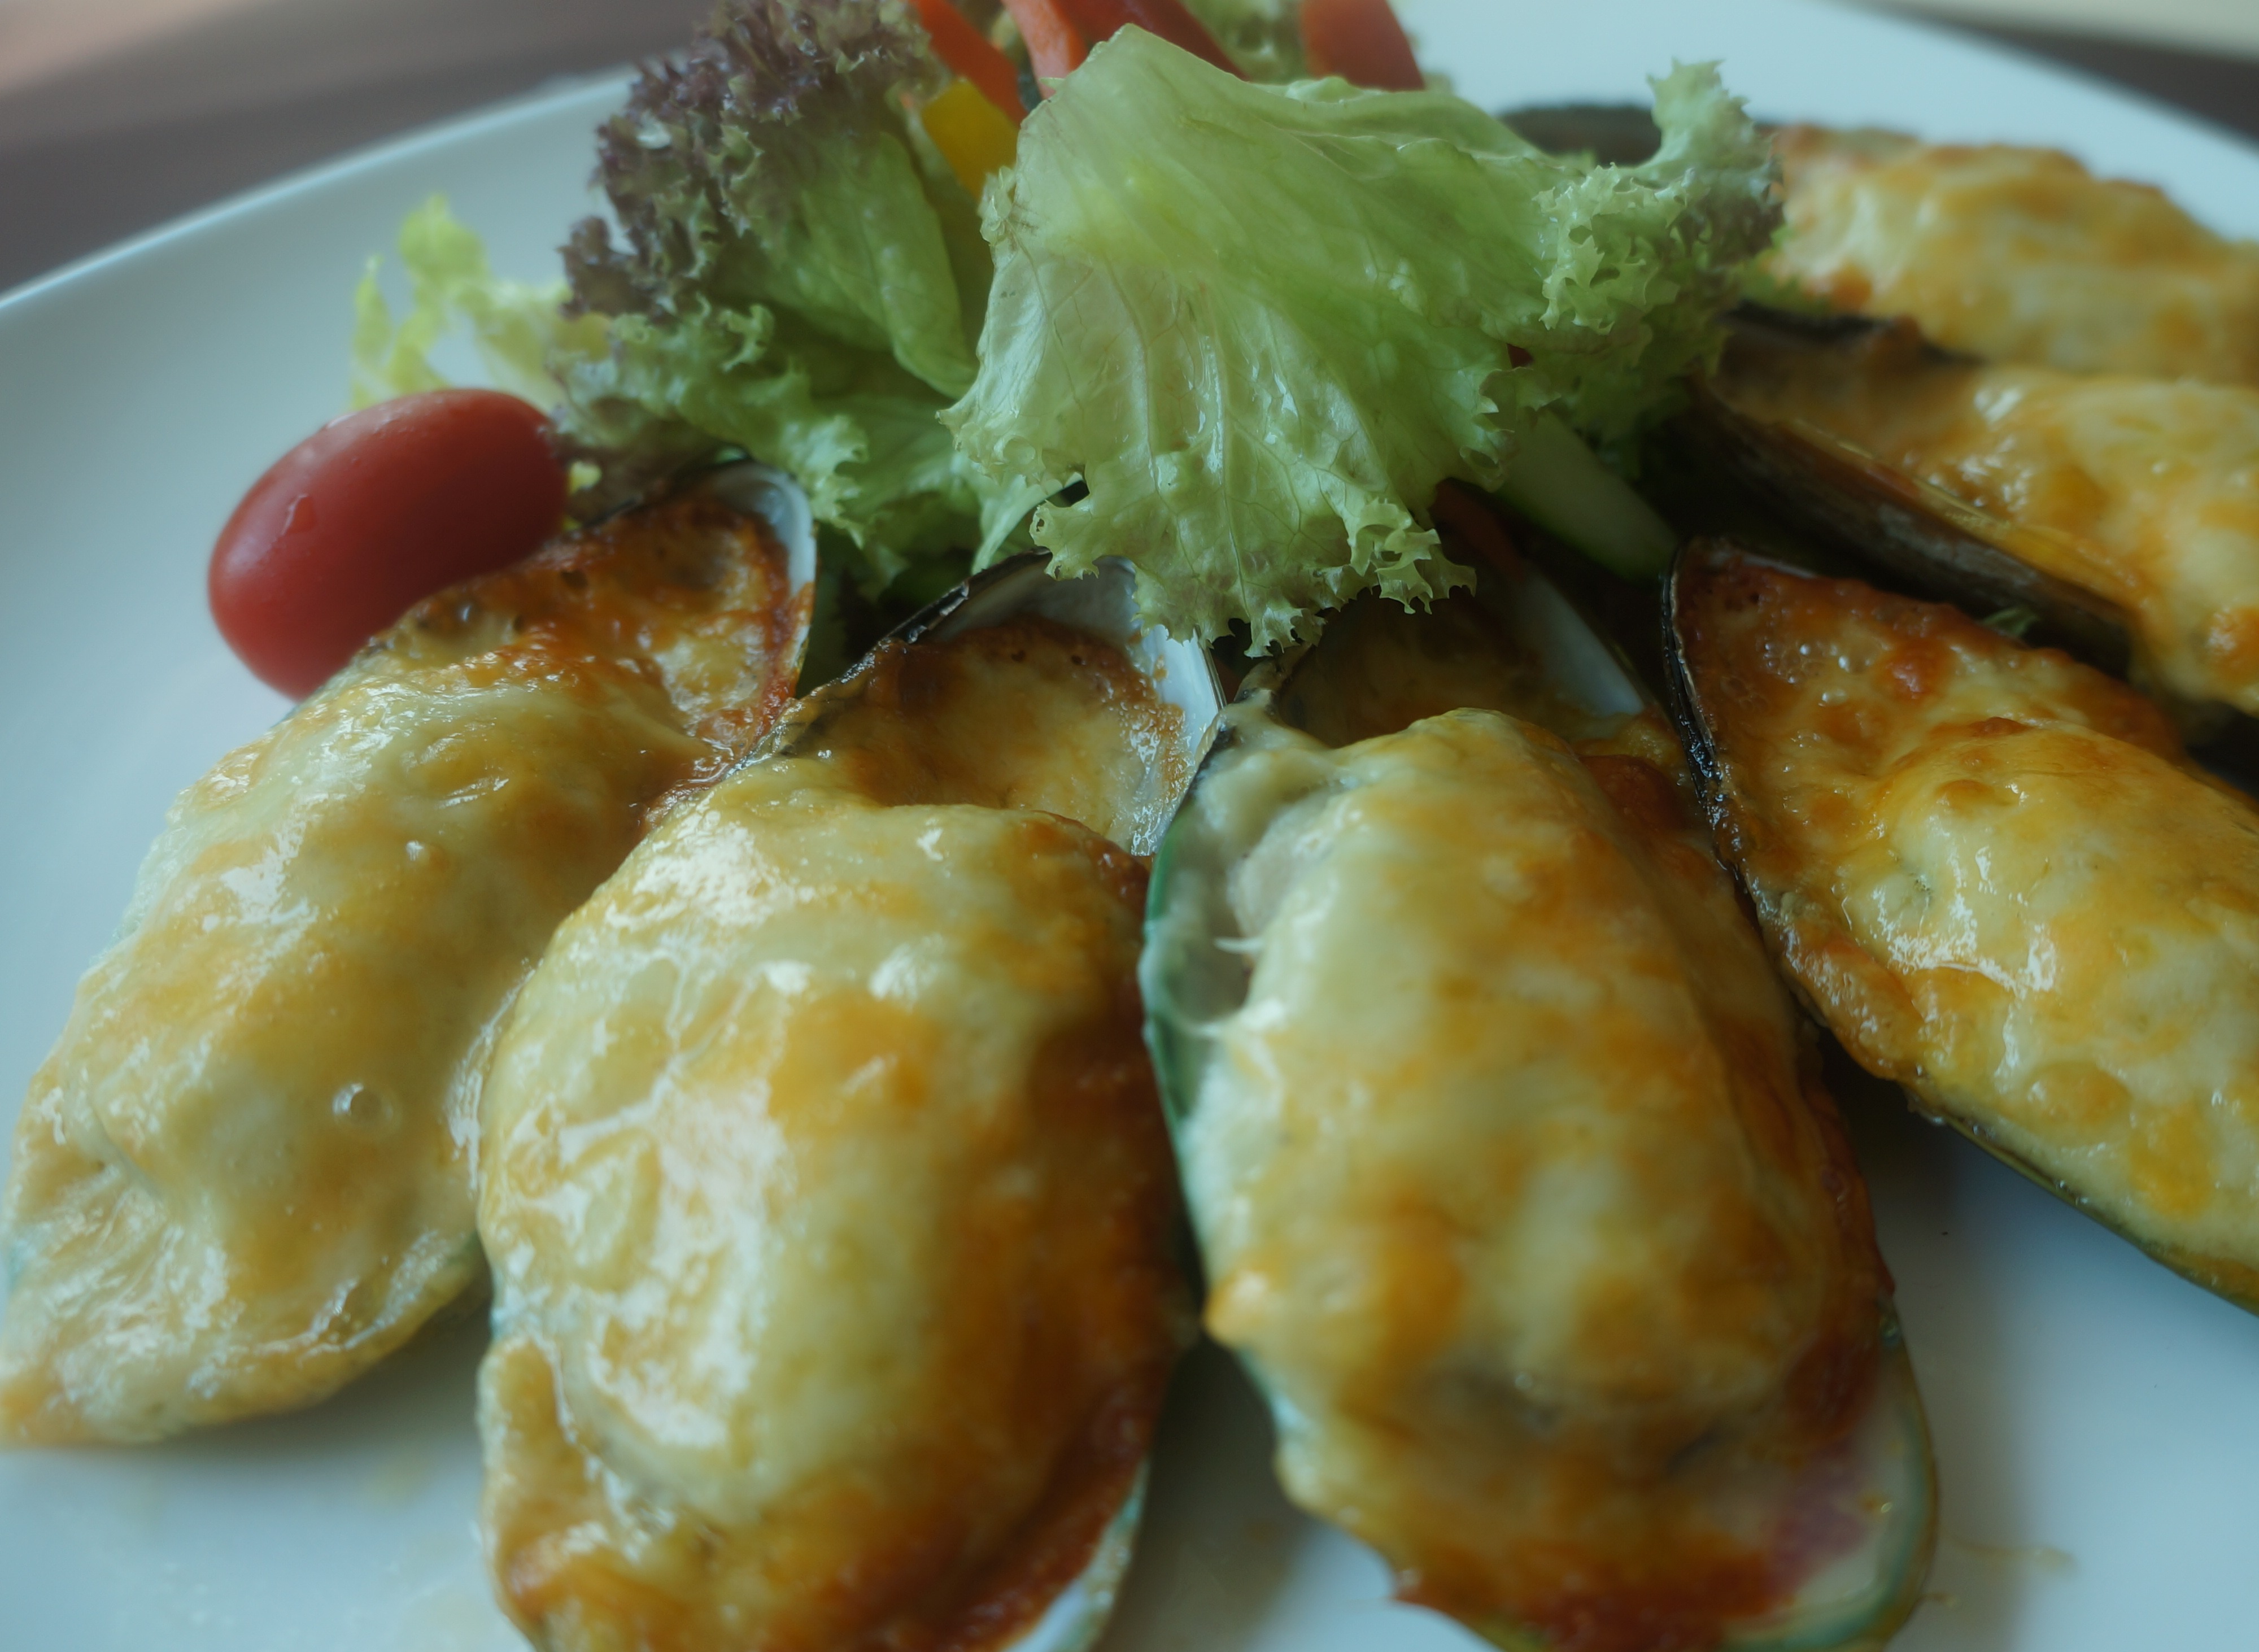 Baked Mussels with Cheese (1/2 dozen)